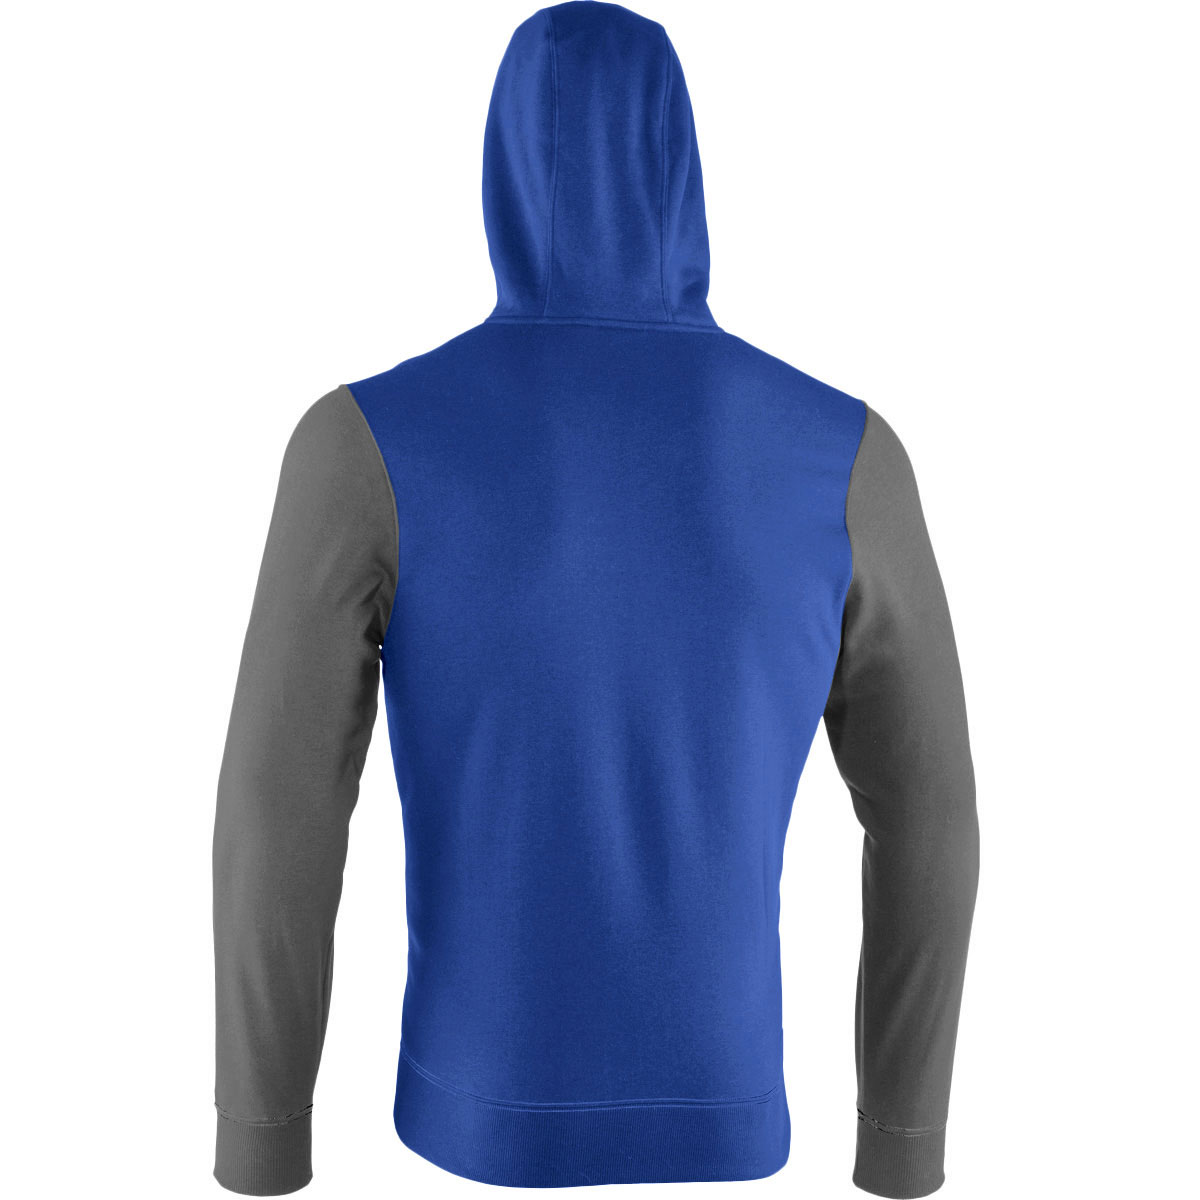 Under armour hoodies for men